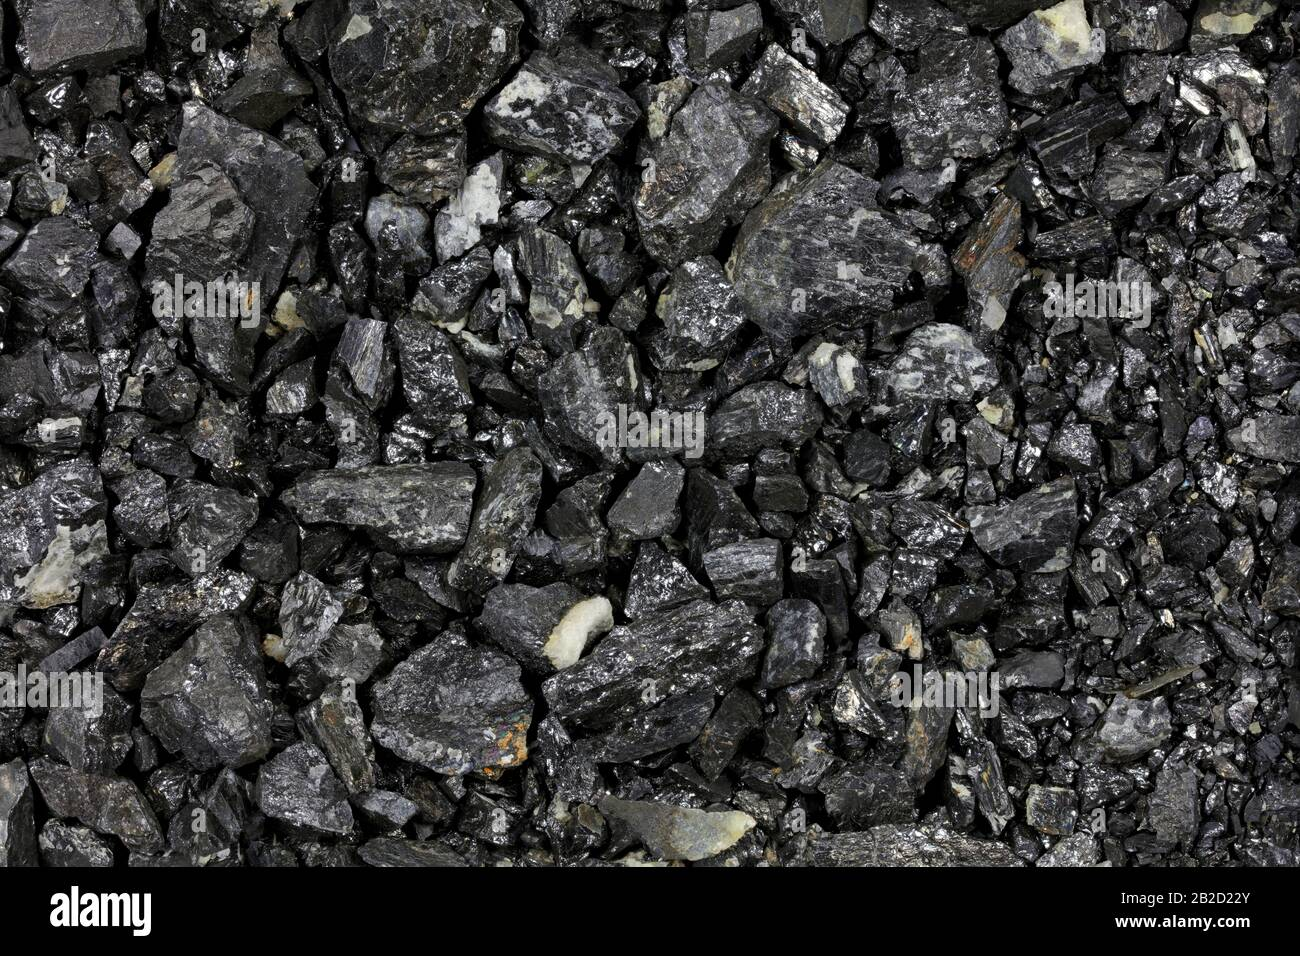 Coltan High Resolution Stock Photography and Images - Alamy